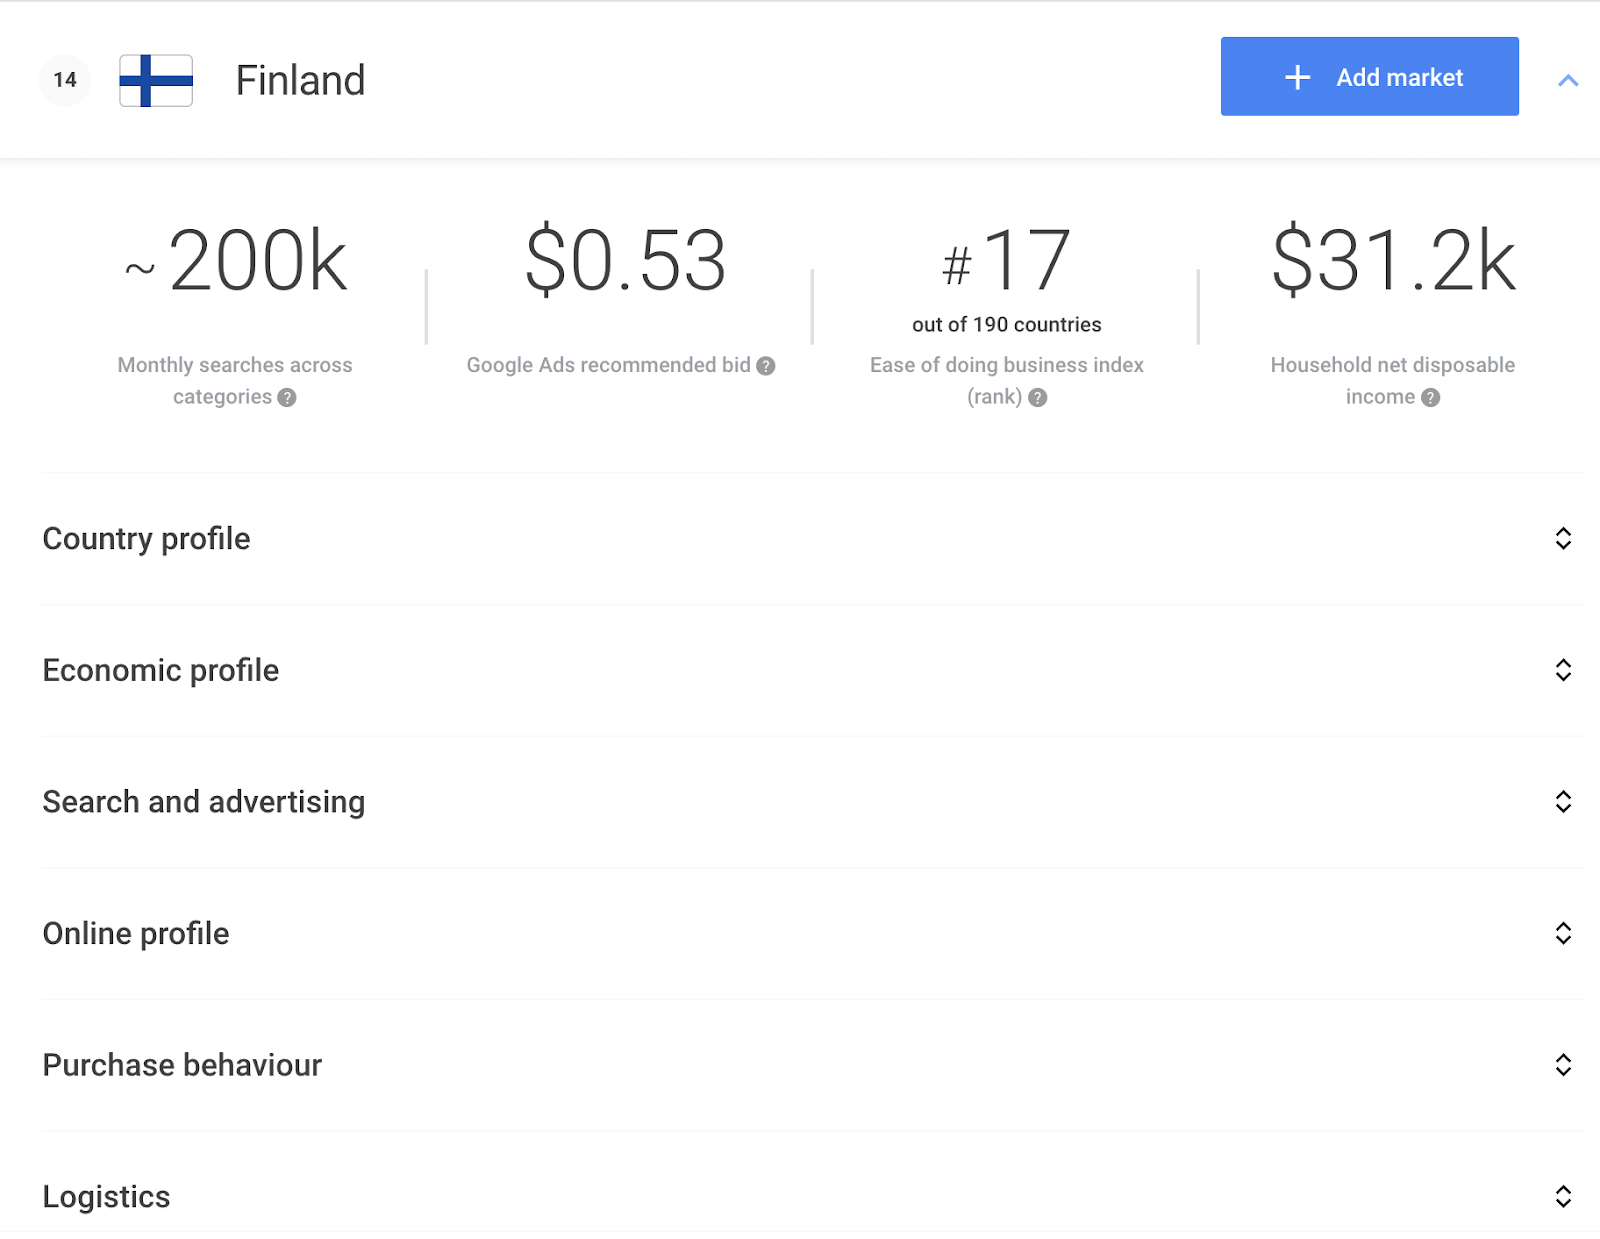 Google Market Finder results 5 tips for companies looking to succeed with multilingual ppc campaigns - how google tools can help you export internationally 5 tips for companies looking to succeed with multilingual PPC campaigns – How Google Tools can help you export internationally BLOG2